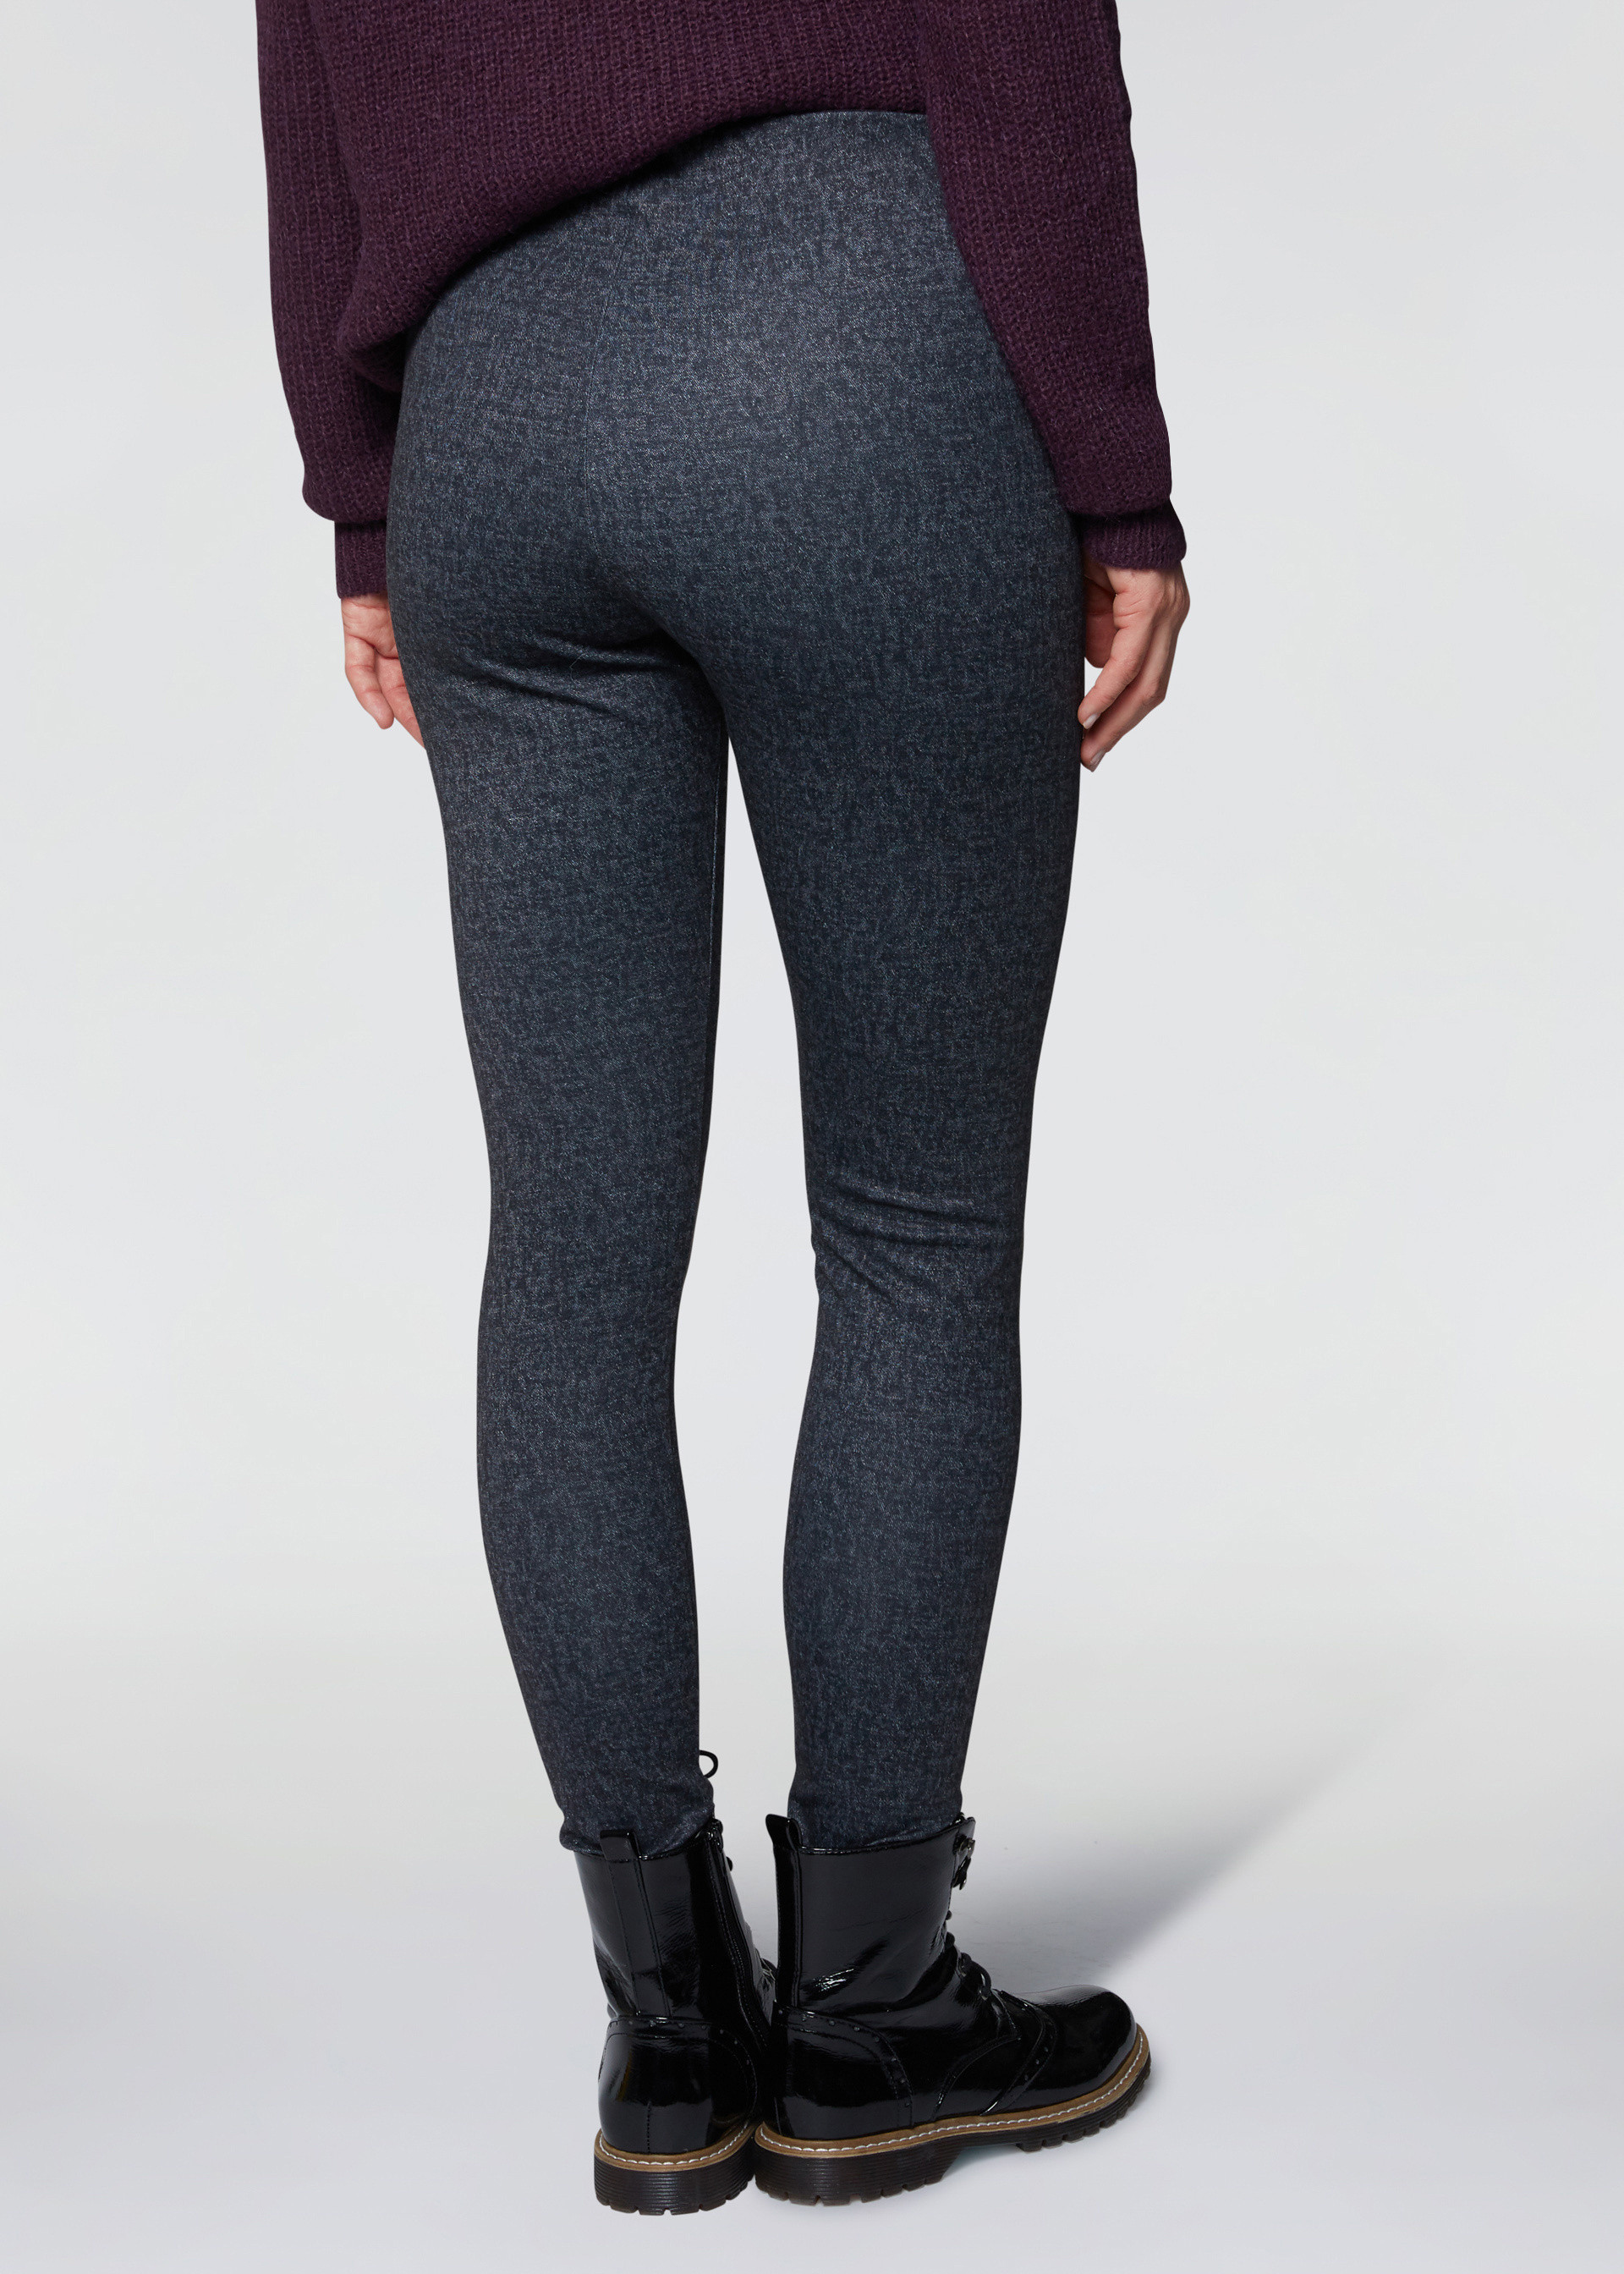 Leggings punto stoffa